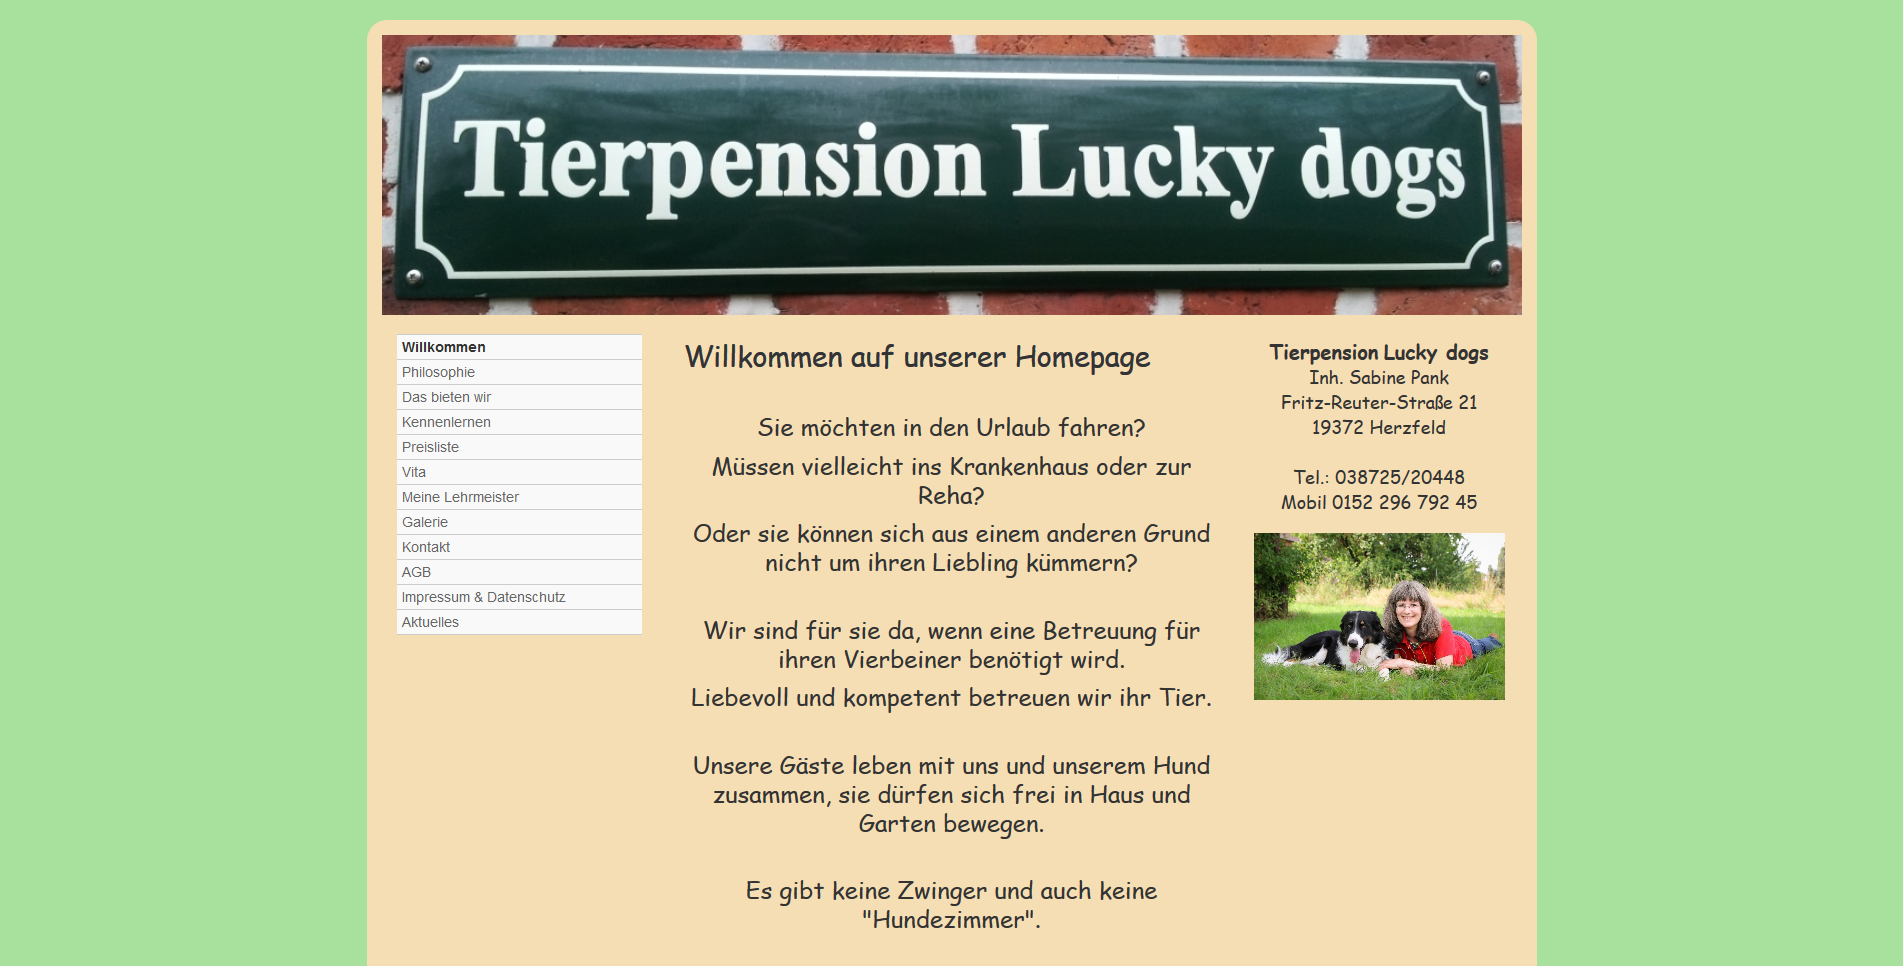 Tierpension Lucky dogs